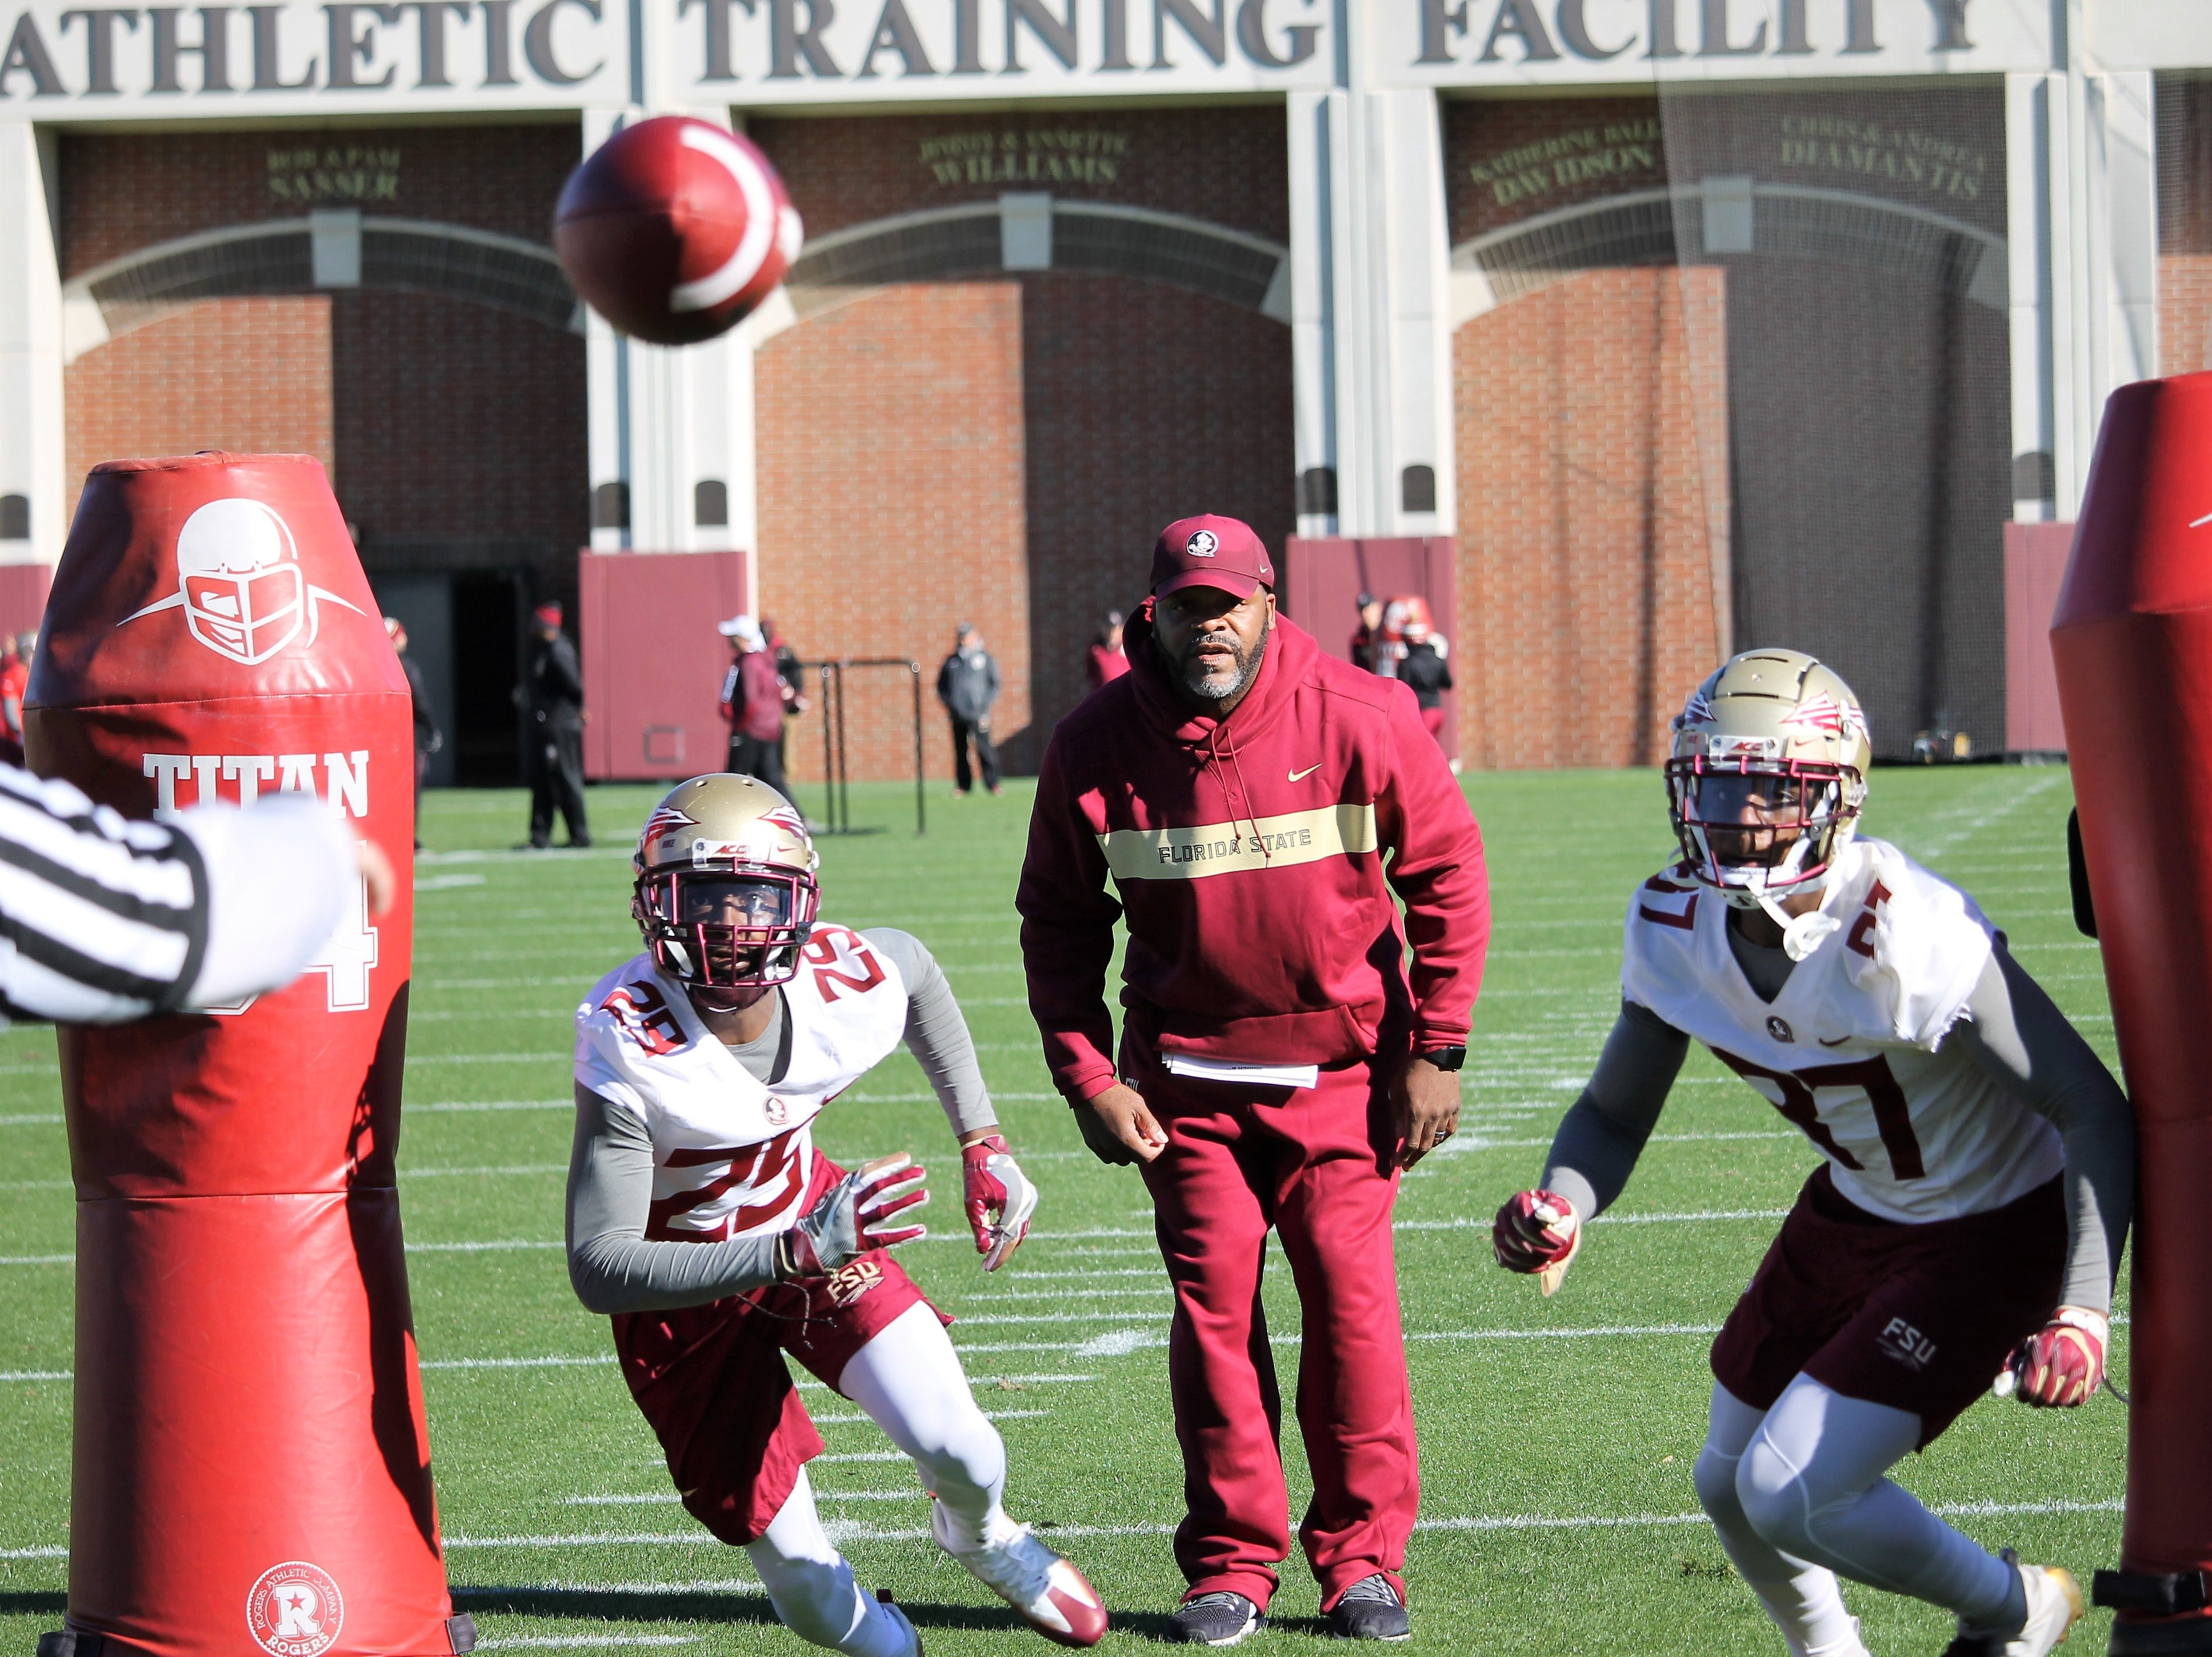 Wide receiver D.J. Matthews (29) and tight end Camm McDonald (87) at FSU football practice on March 6, 2019.